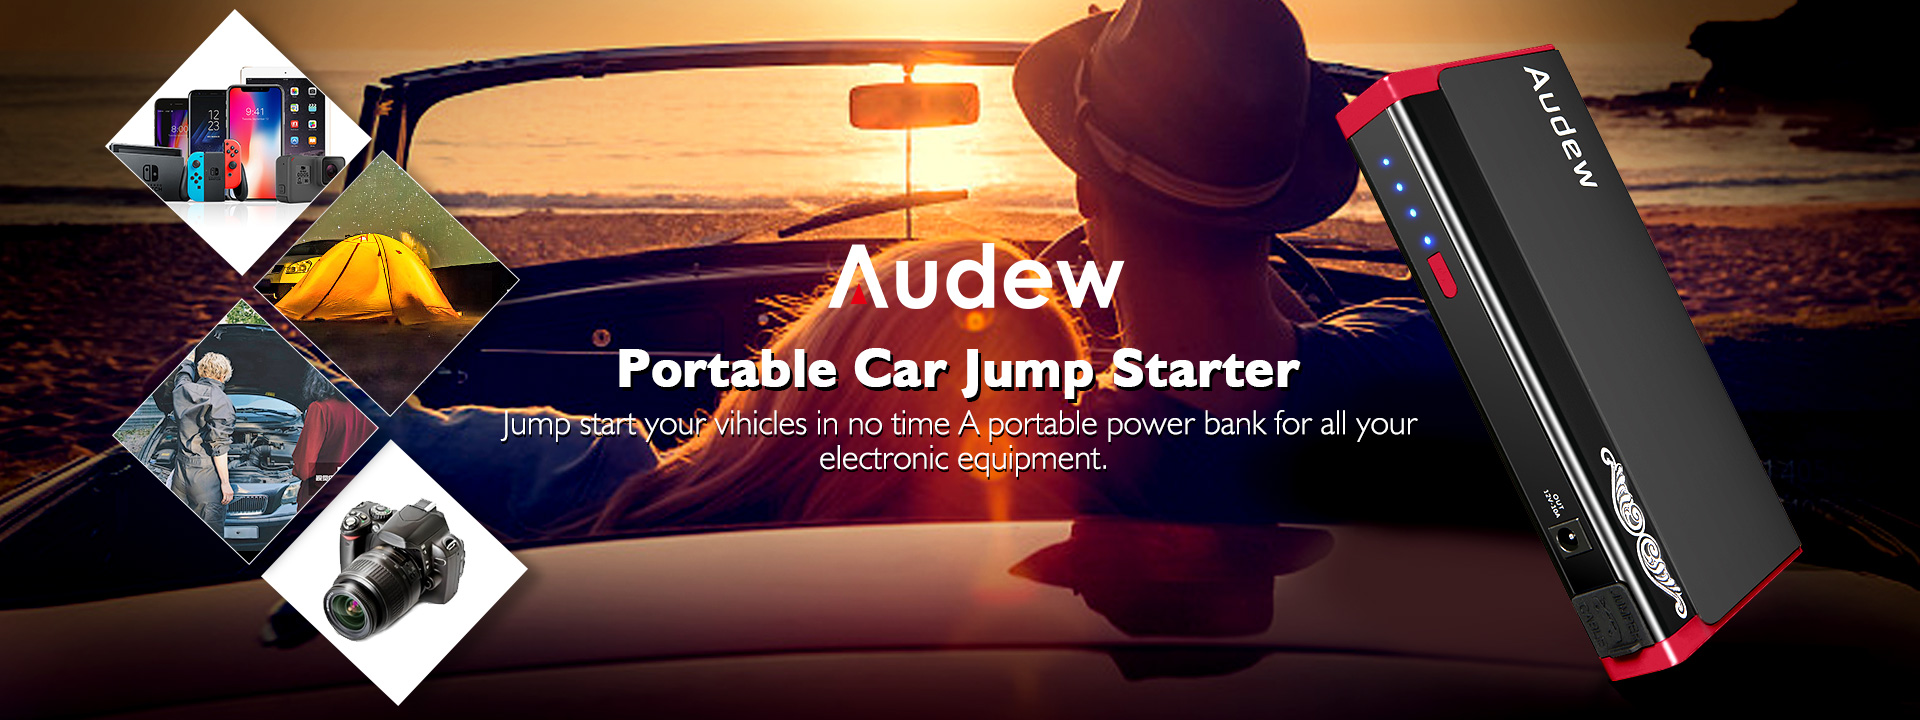 AUDEW Portable Car Jump Starter 13800mAh 400A Peak Auto Battery Booster (Up to 5L Gas or 3L Diesel Engine) PowerPack Charger with LED Light